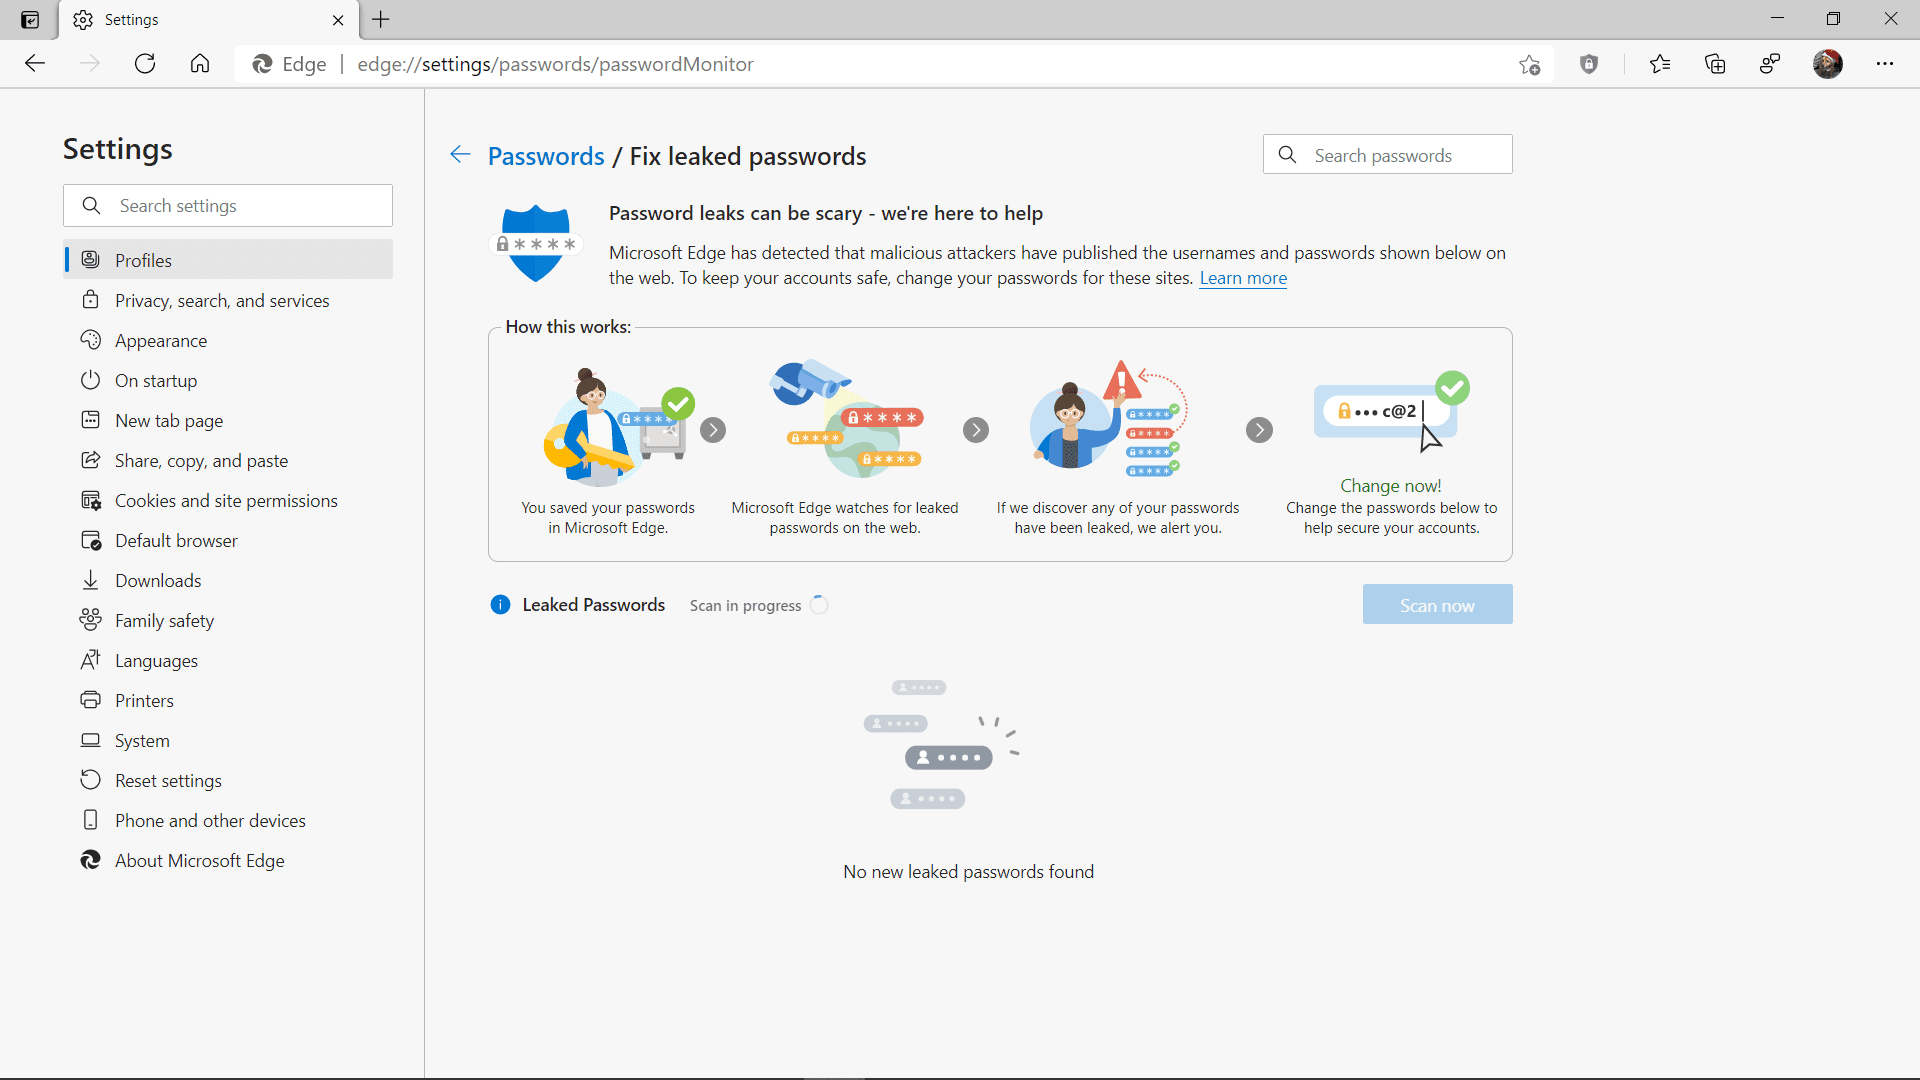 Running a password monitor scan in Microsoft Edge.